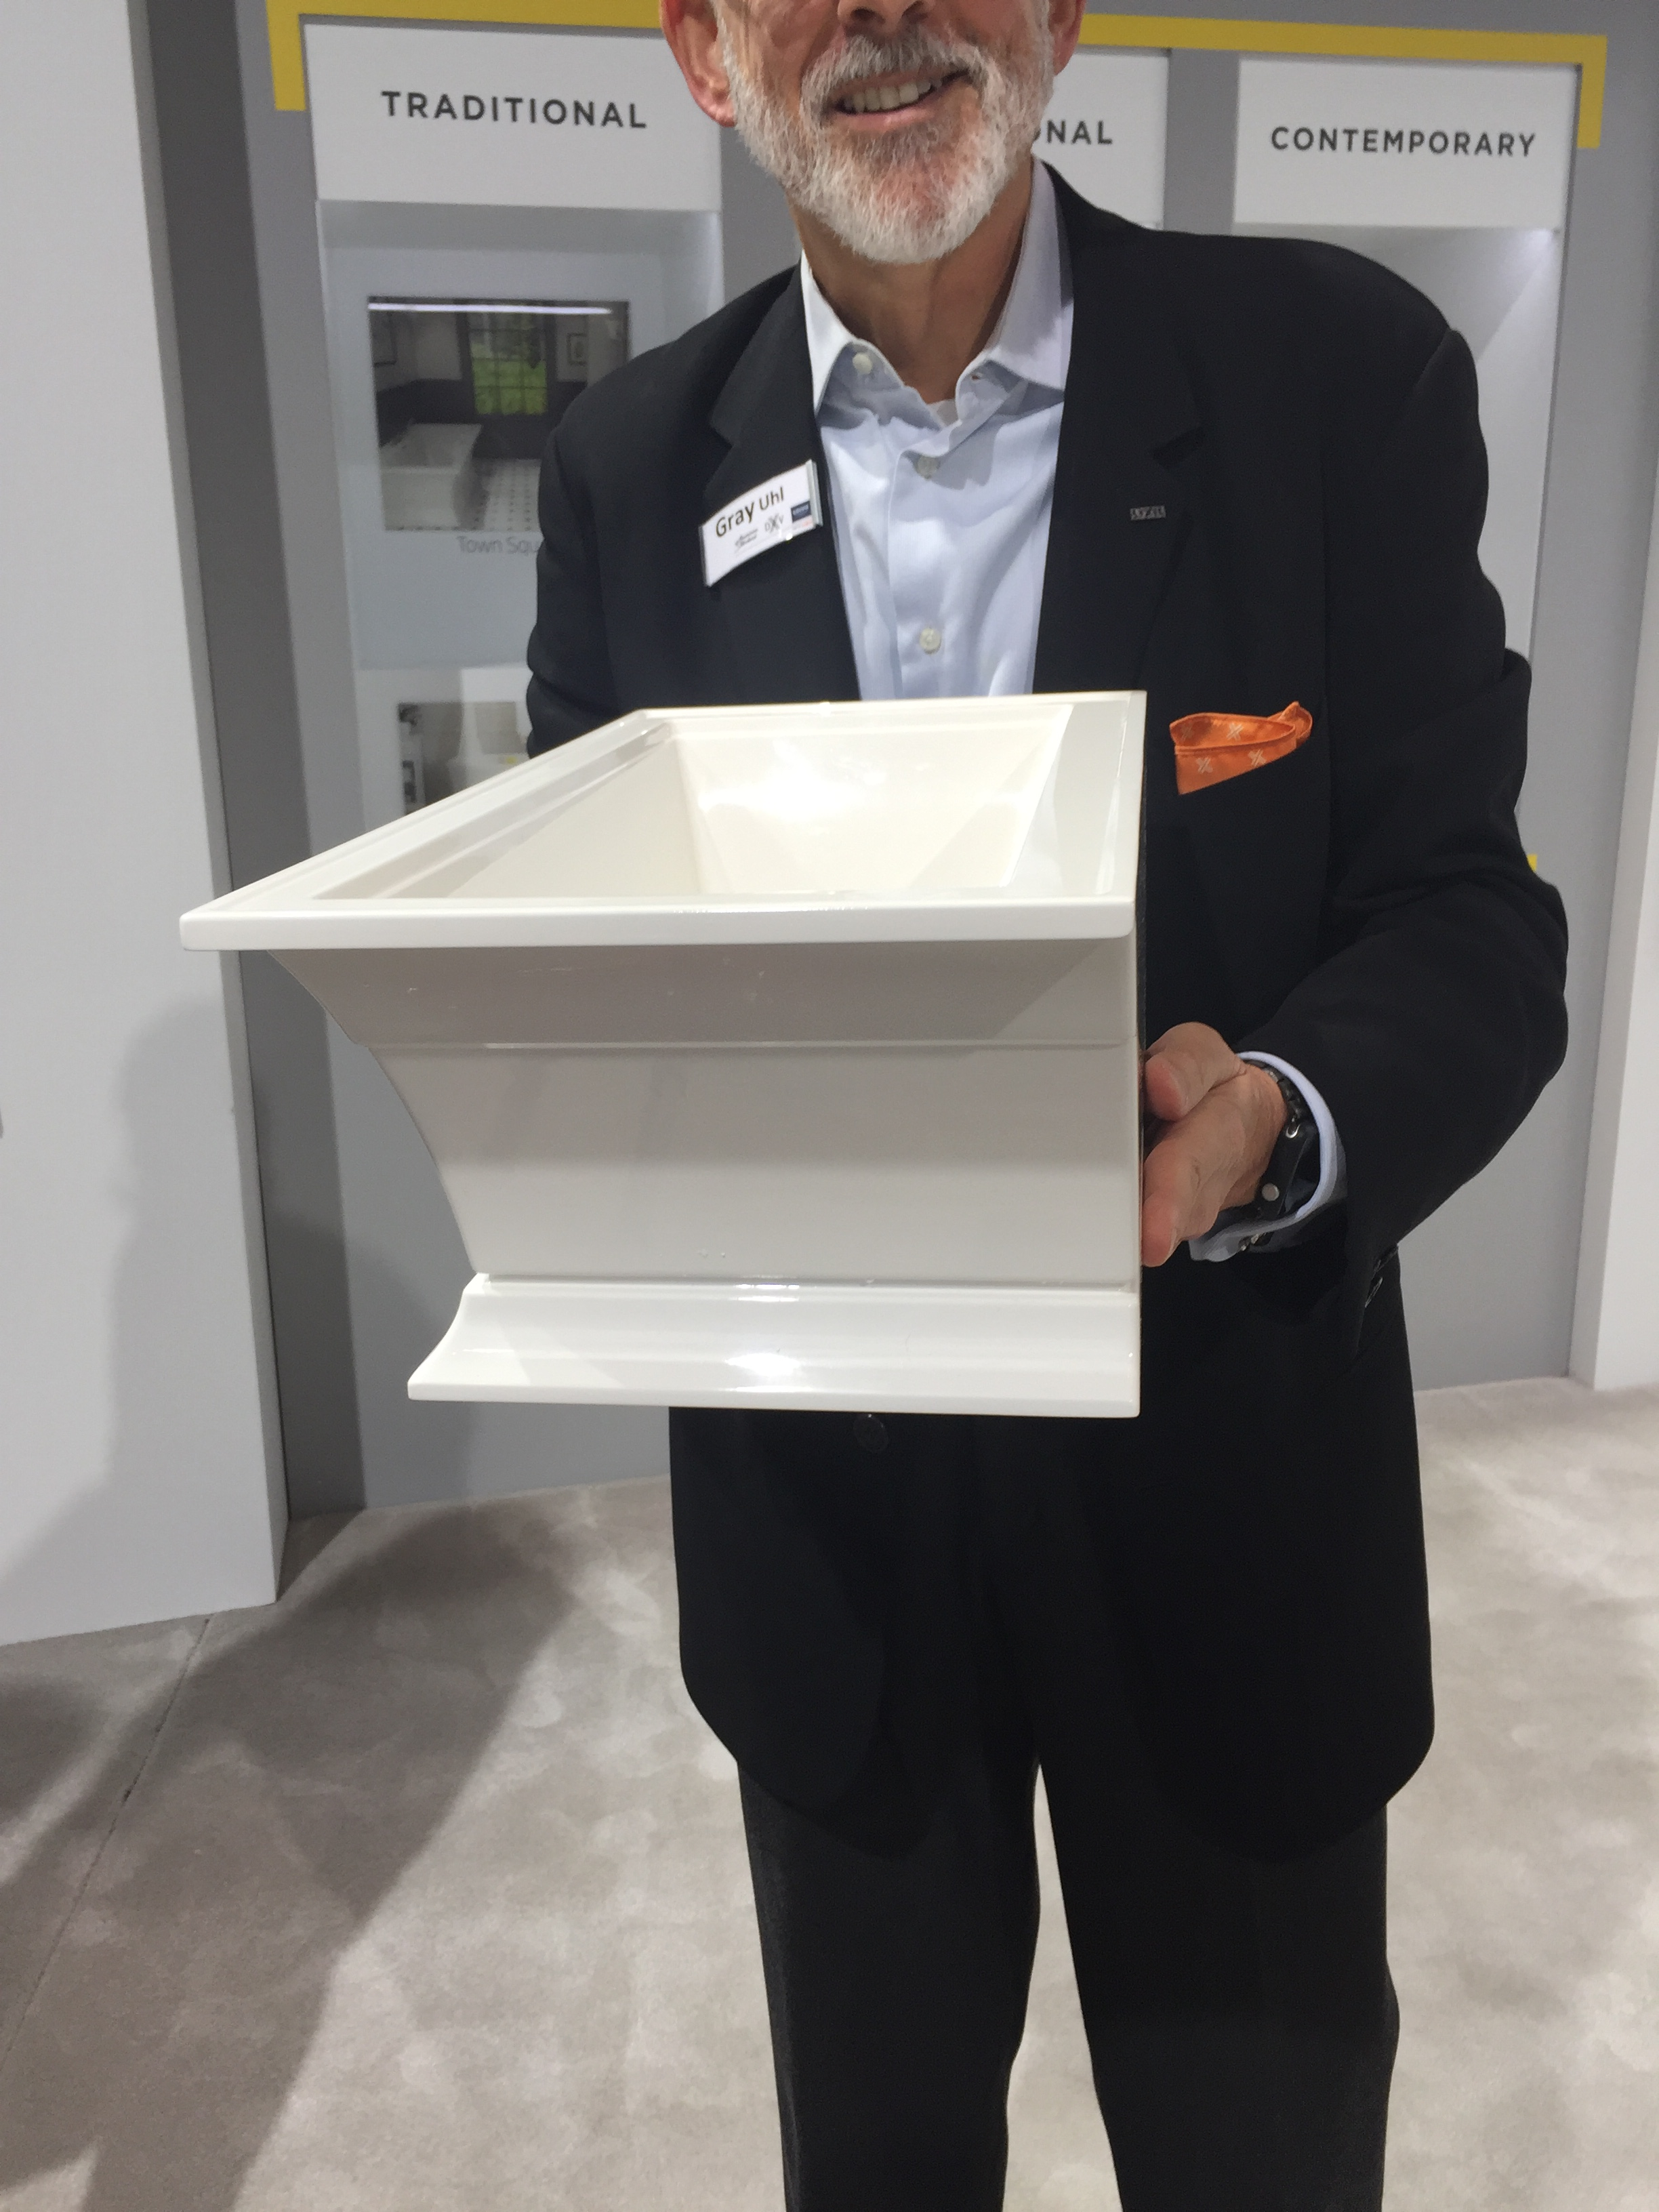 3-sided free standing tub from DXV debuts at KBIS2018 for a snug to the wall installation #bathroomdesign #tub #freestandingtub #DXV #kbis2018